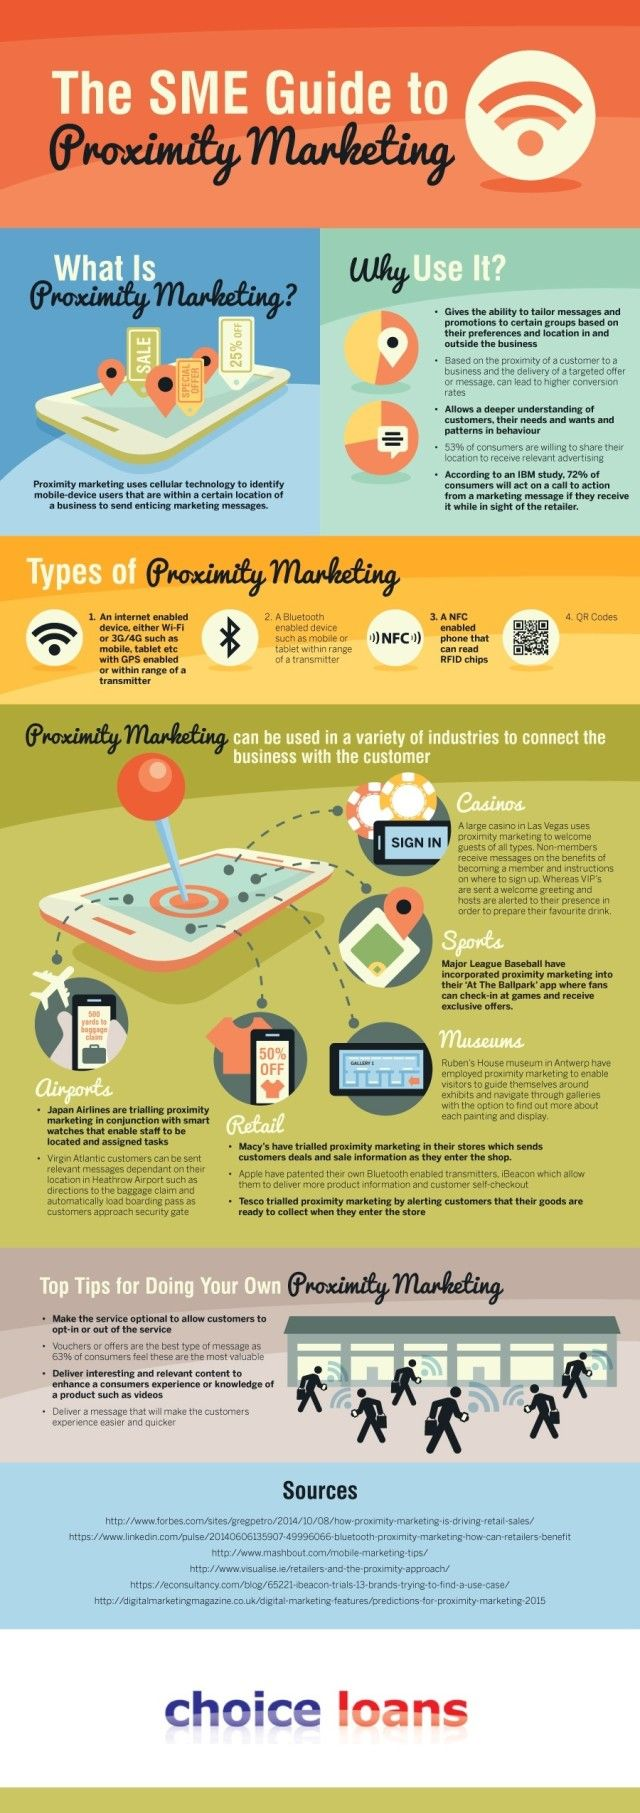 #Marketing #Infographics: The SME Guide to Proximity Marketing